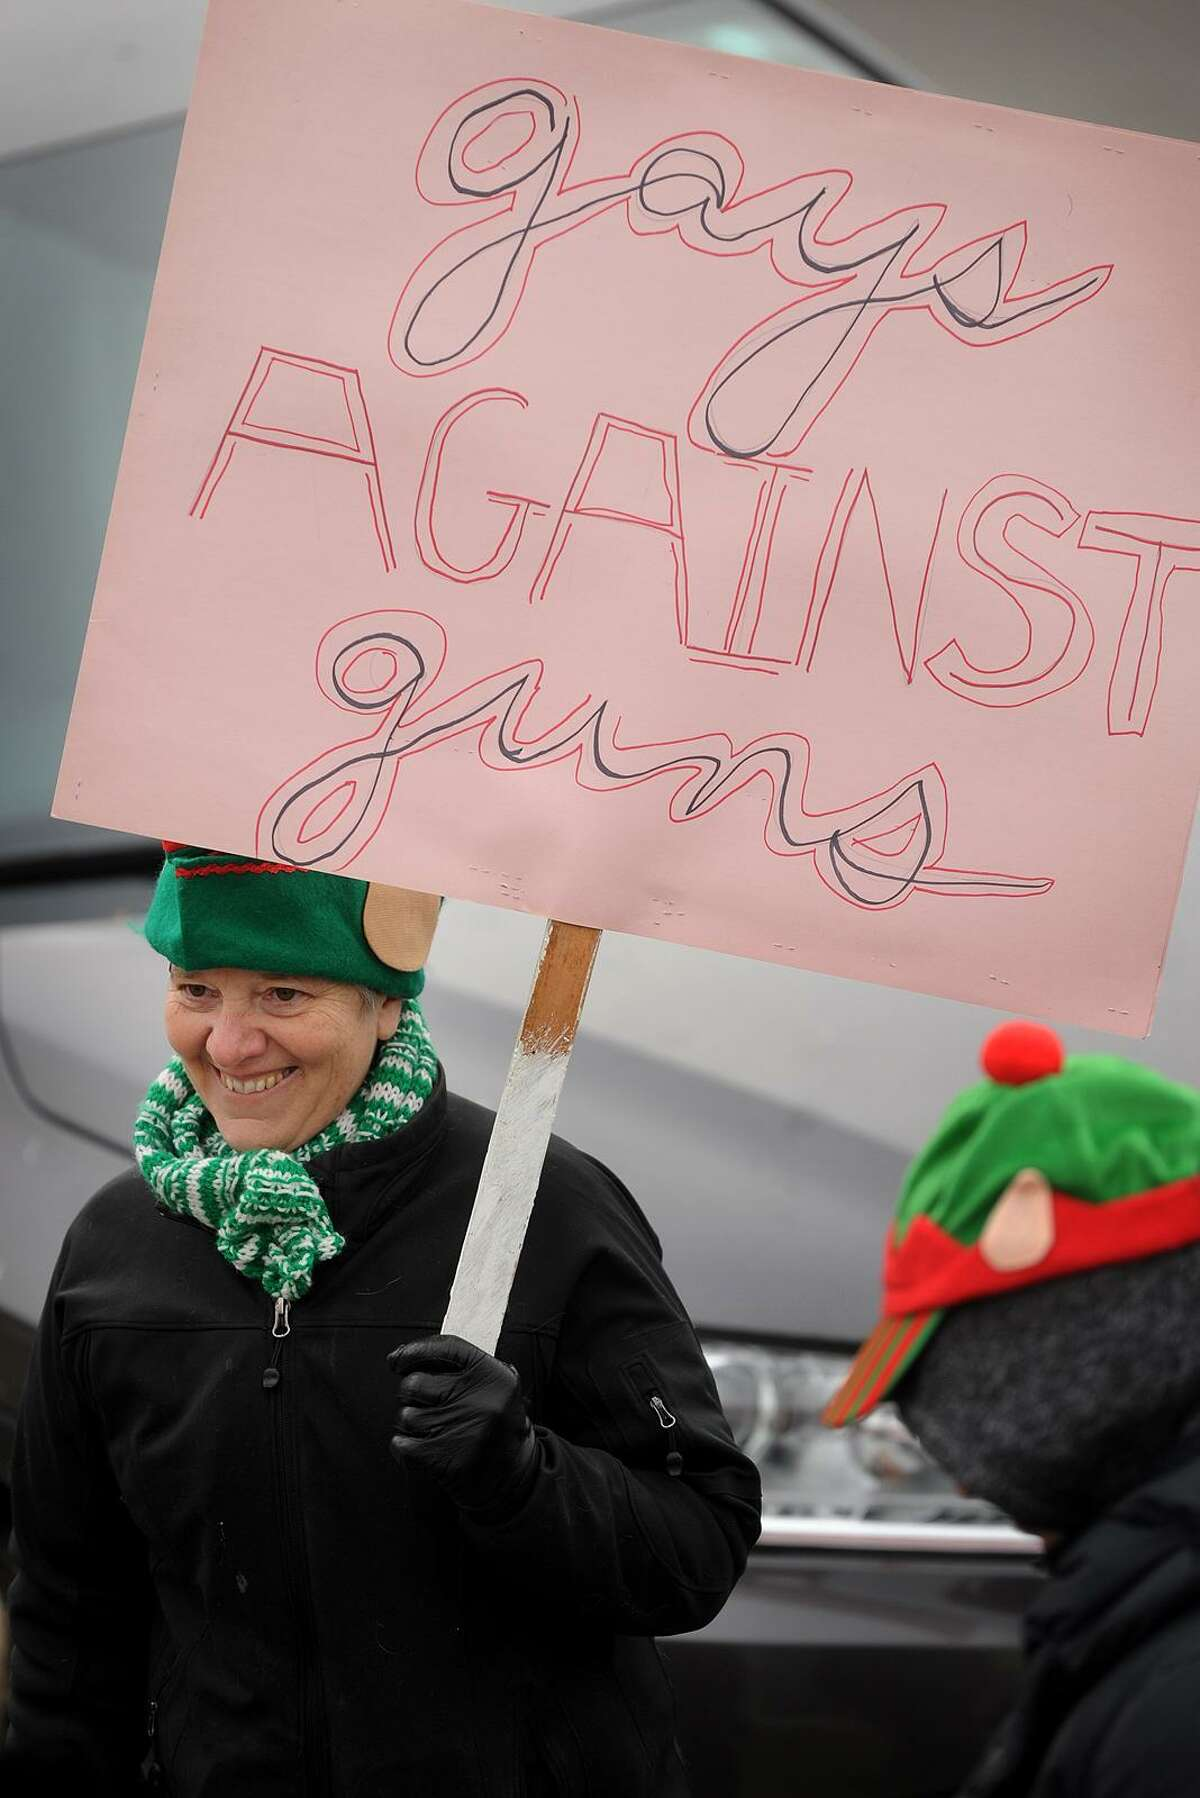 Christine Bisceglie, of Norwalk, marches with the New York-based group Gays Against Guns from the Fairfield Train Station to gun maker Sturm Ruger's headquarters in Fairfield on Sunday. Sturm Ruger manufactures the AR-556 assault rifle.